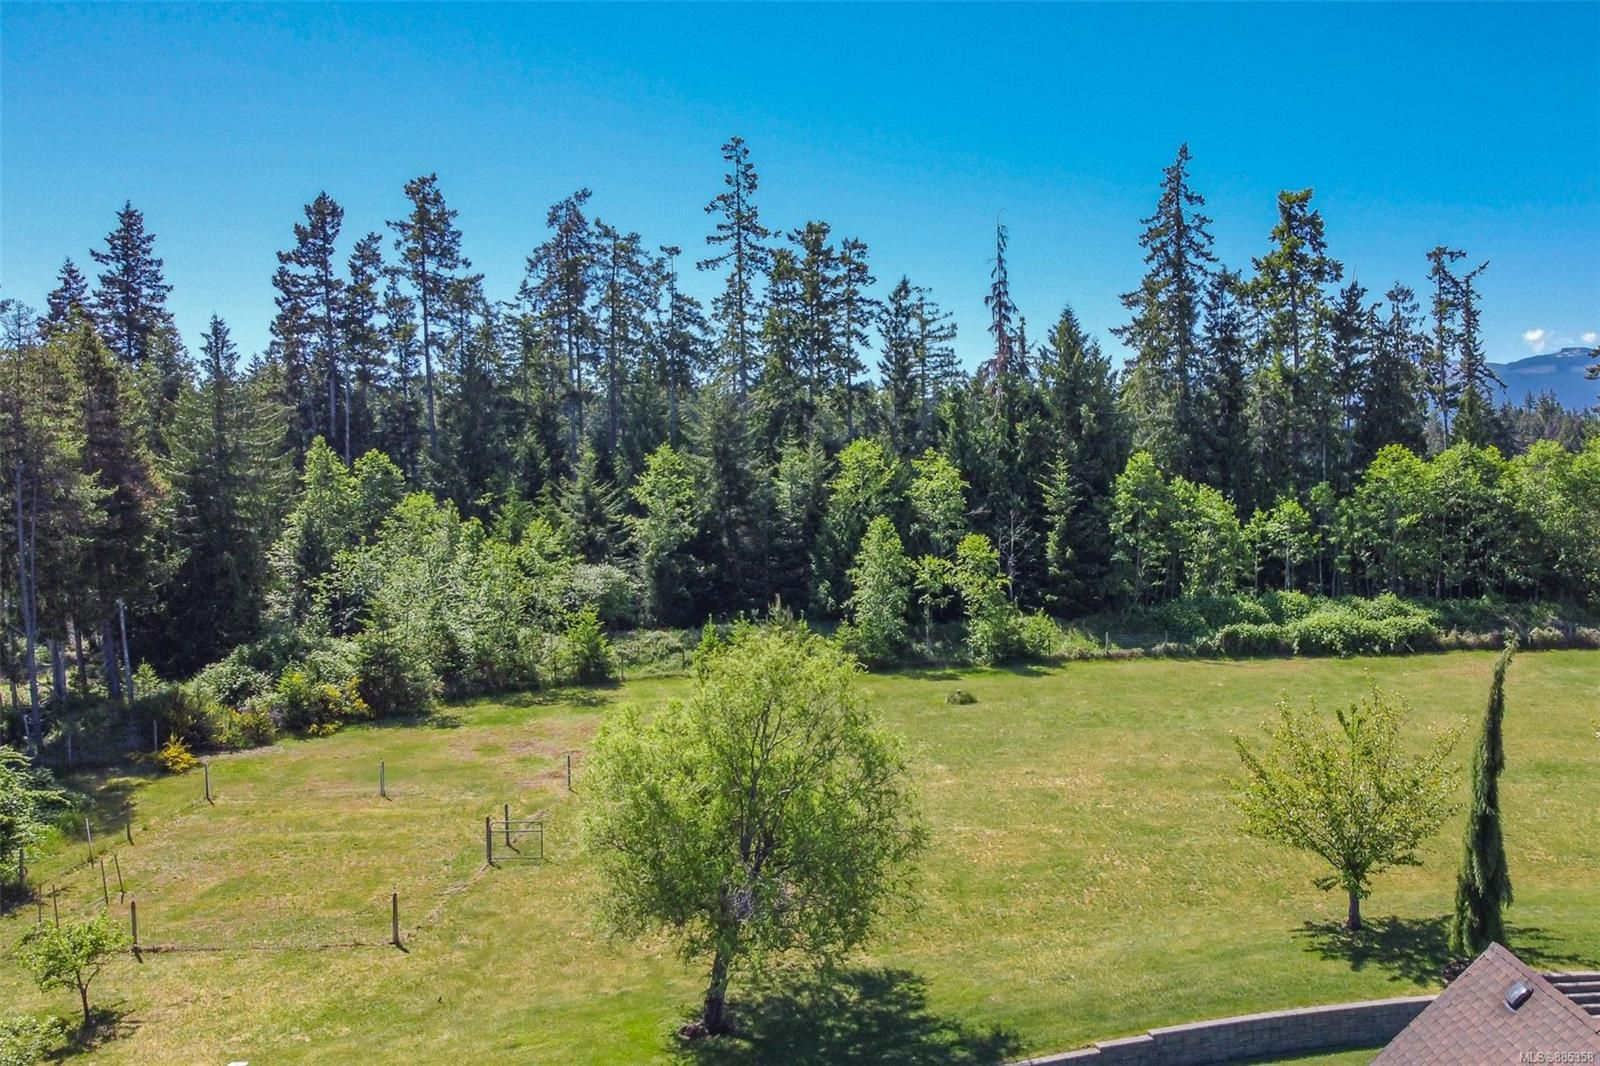 Photo 75: Photos: 2850 Peters Rd in : PQ Qualicum Beach House for sale (Parksville/Qualicum)  : MLS®# 885358